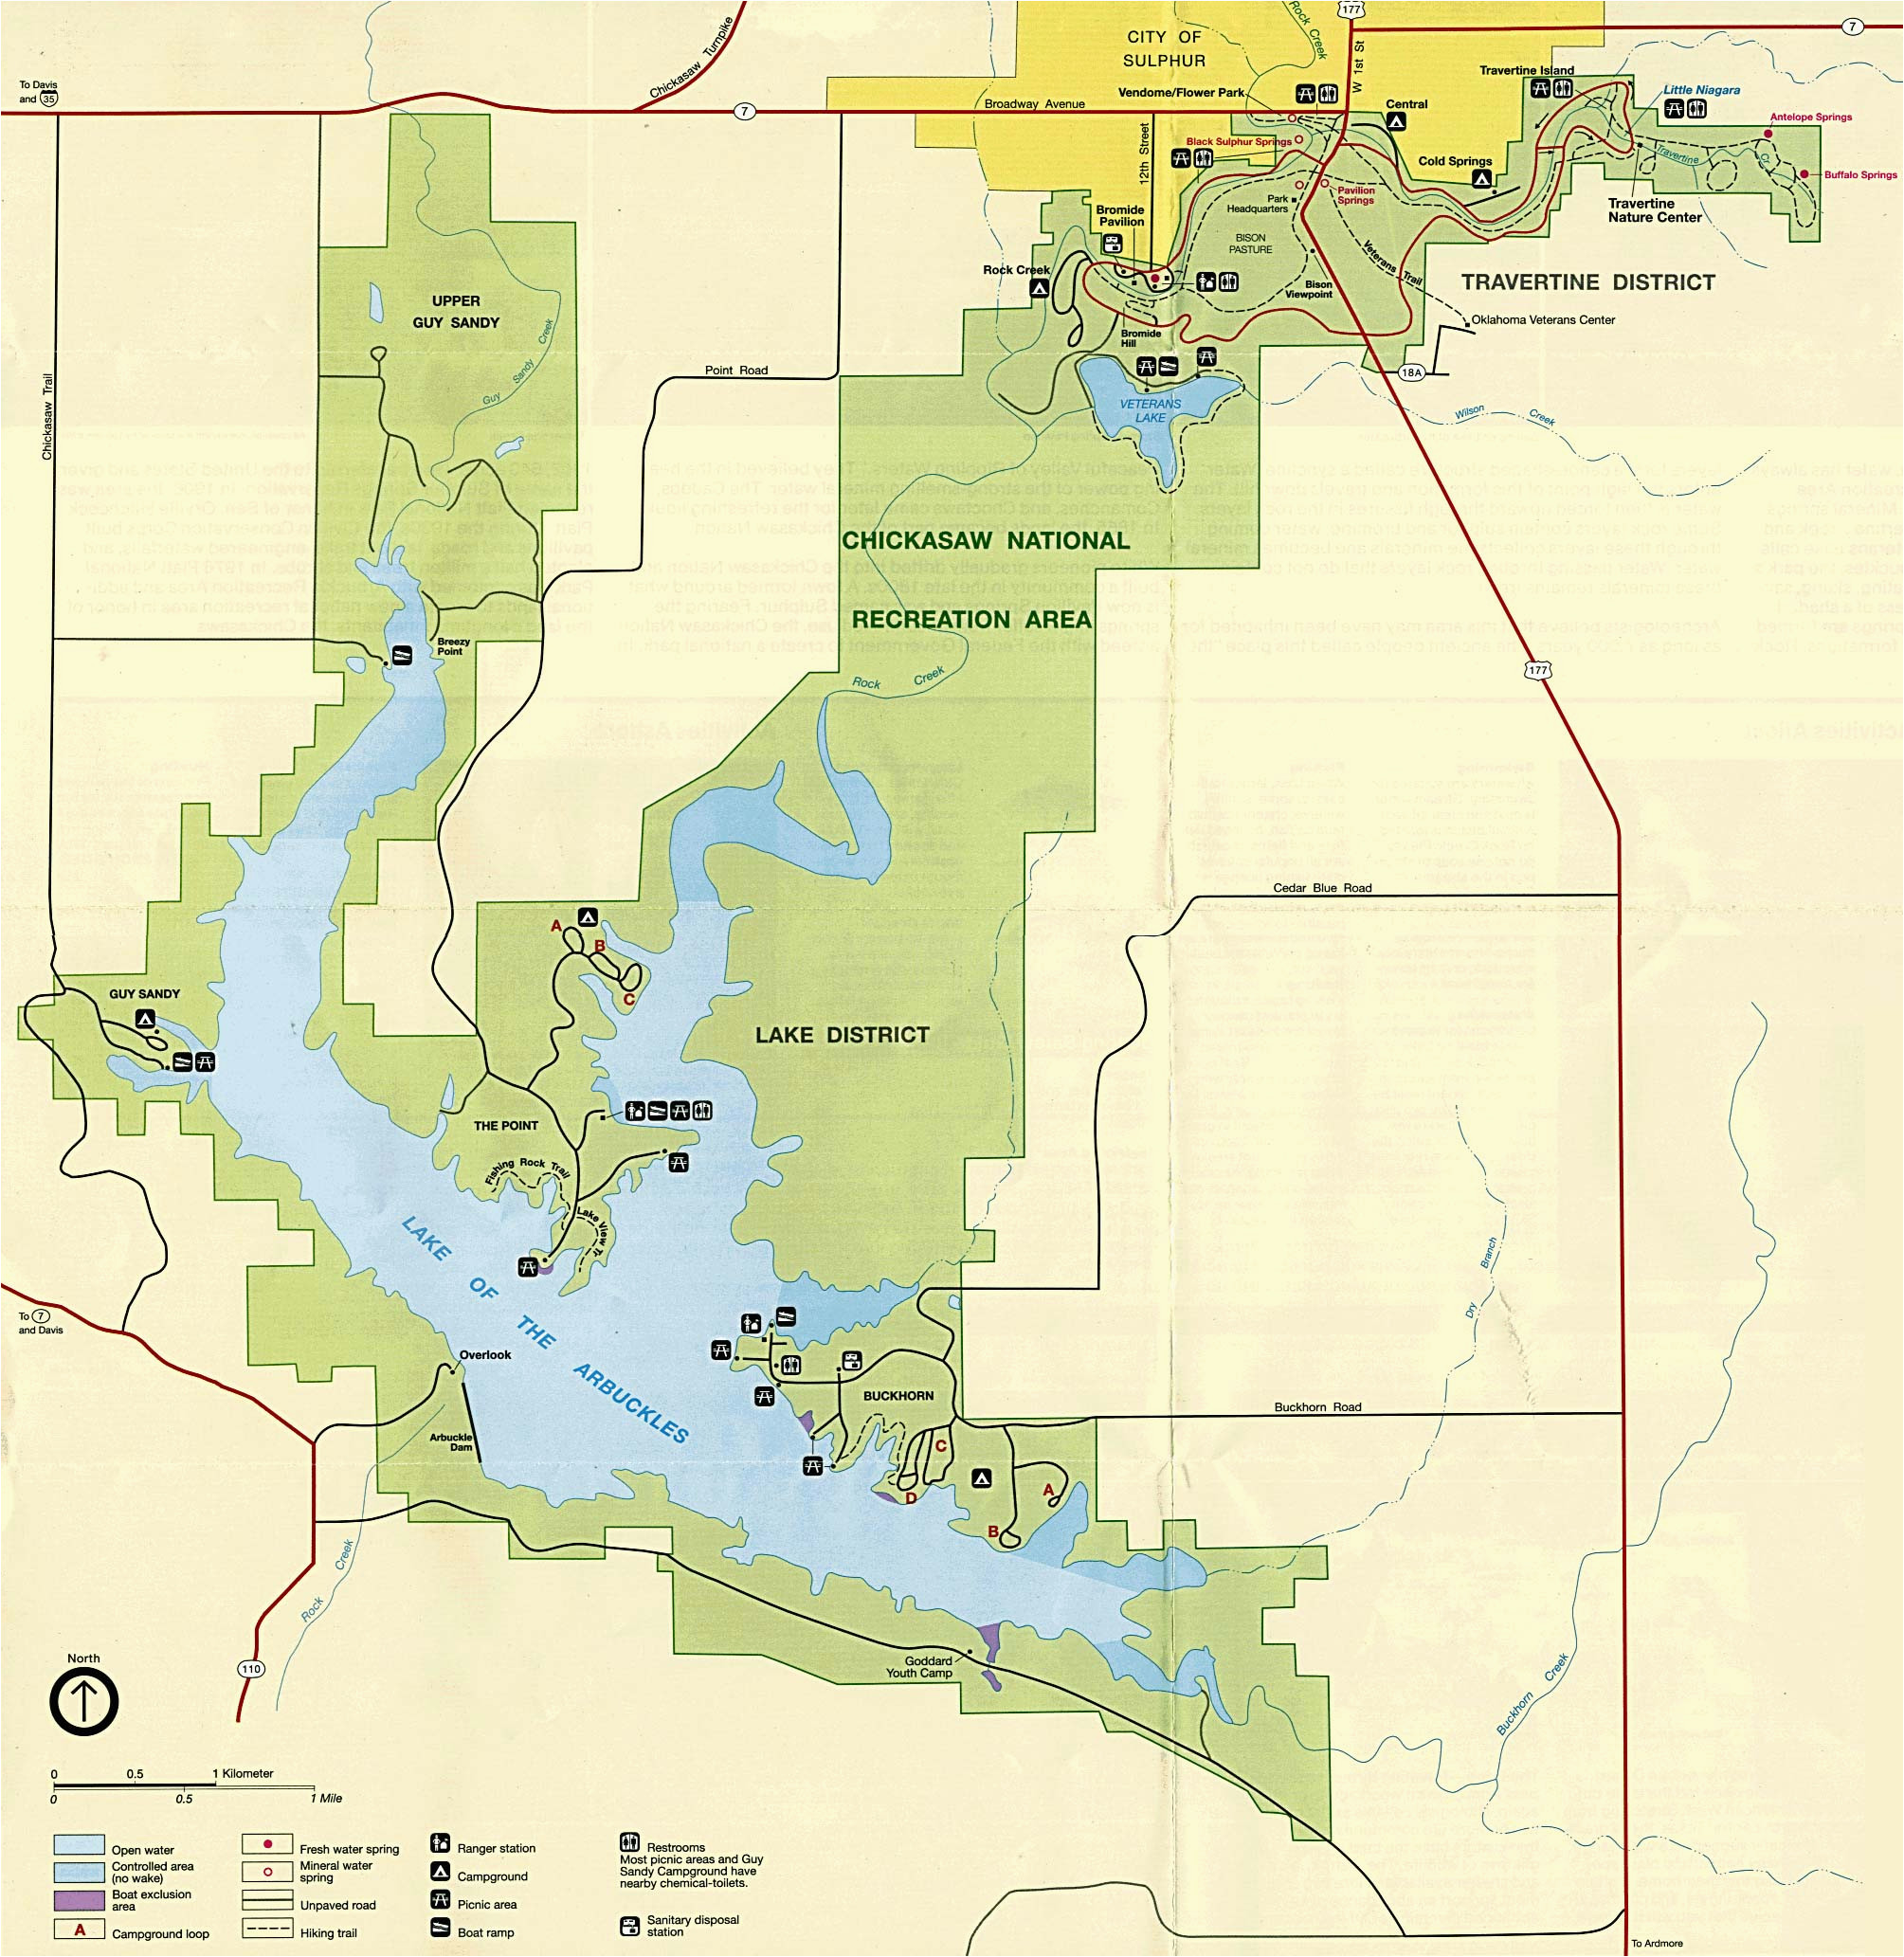 ohio state parks map beautiful united states national parks and